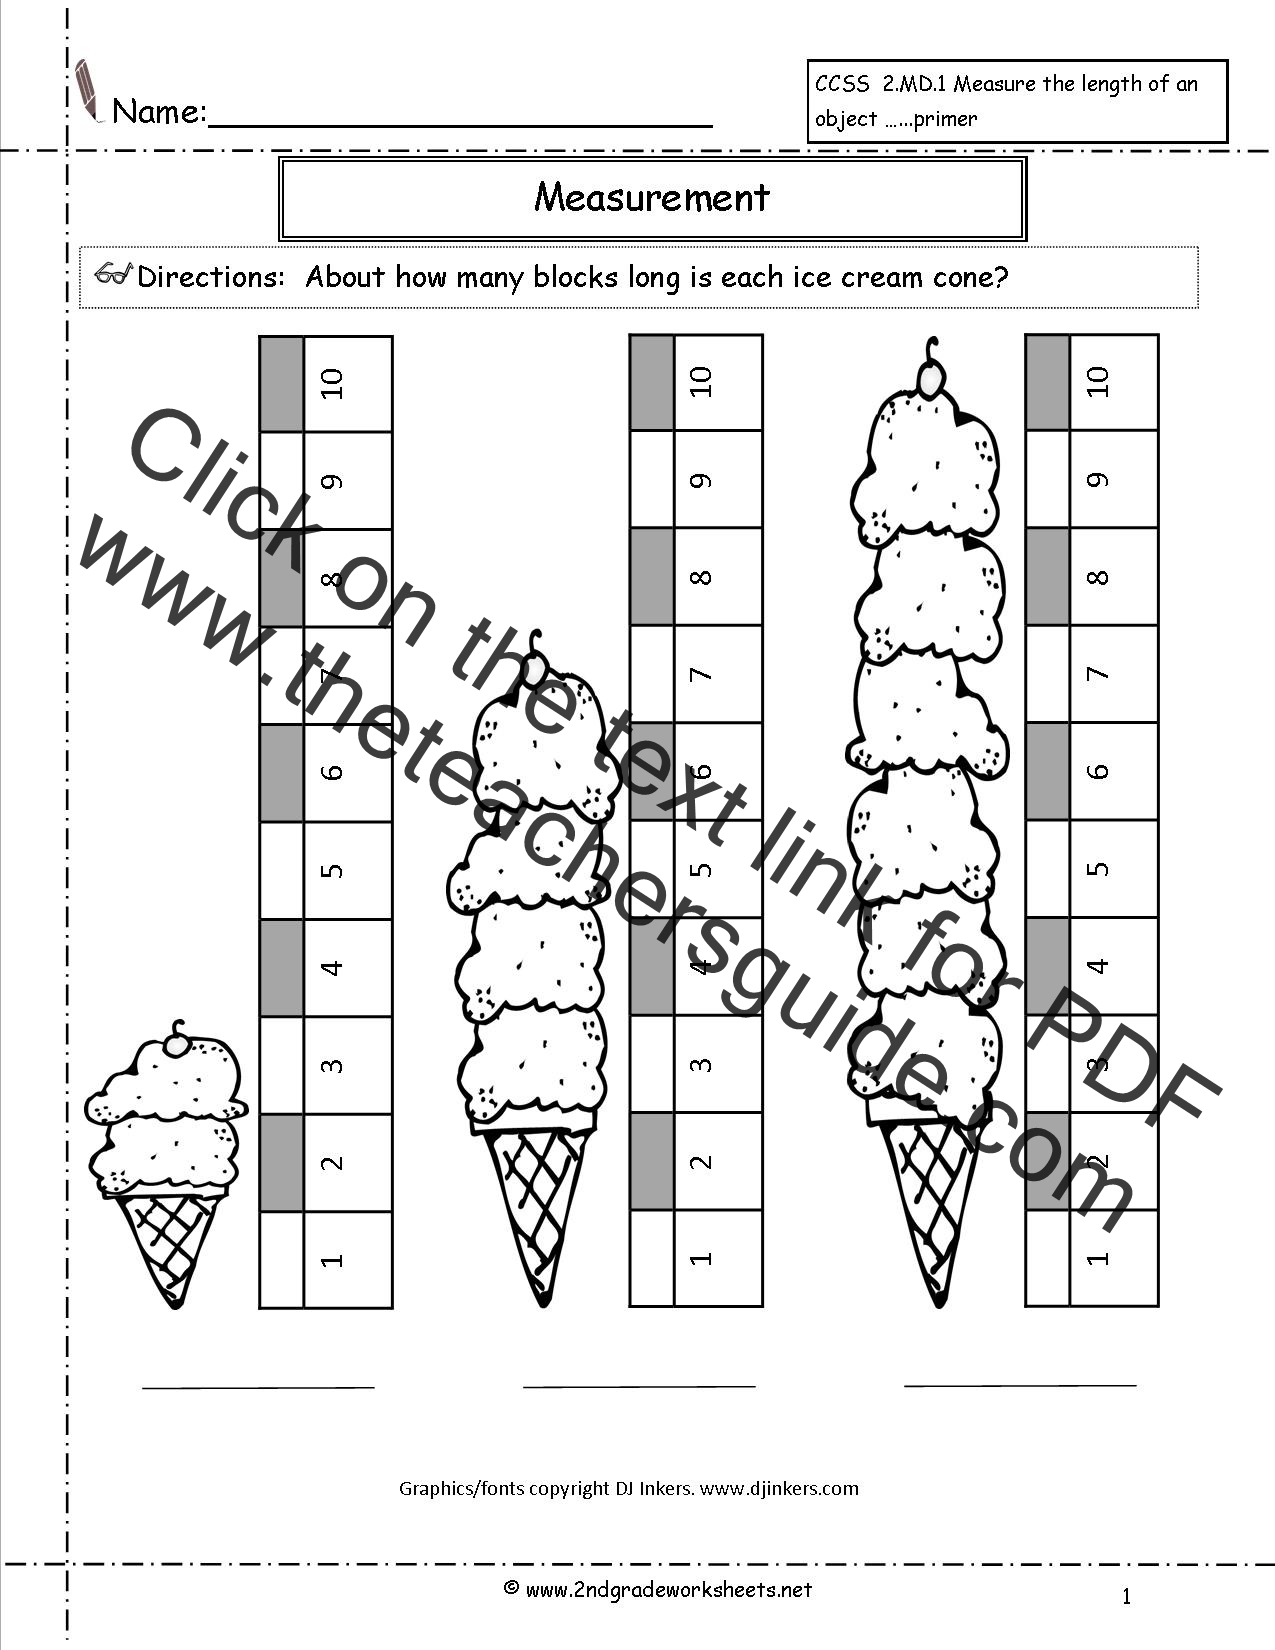 Standard Units Of Measurement Worksheet